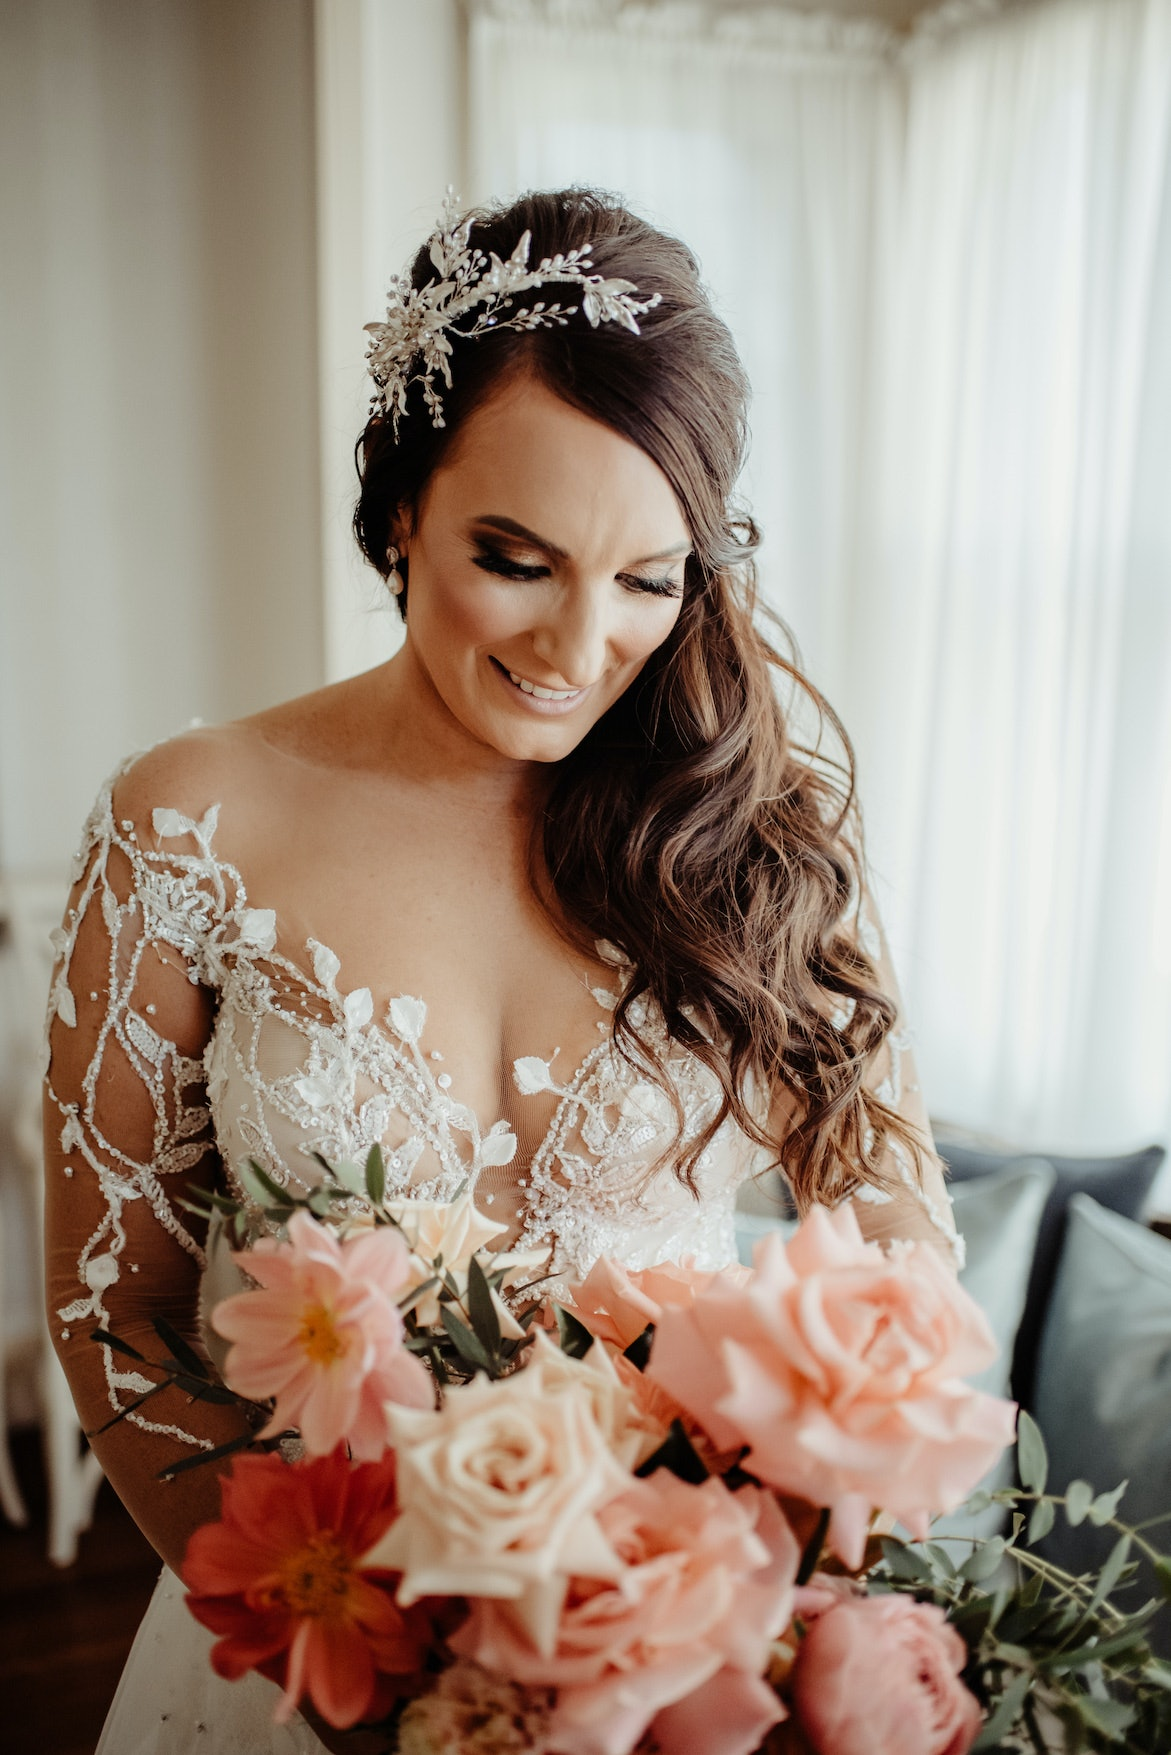 Bride smiling looking down at bouquet